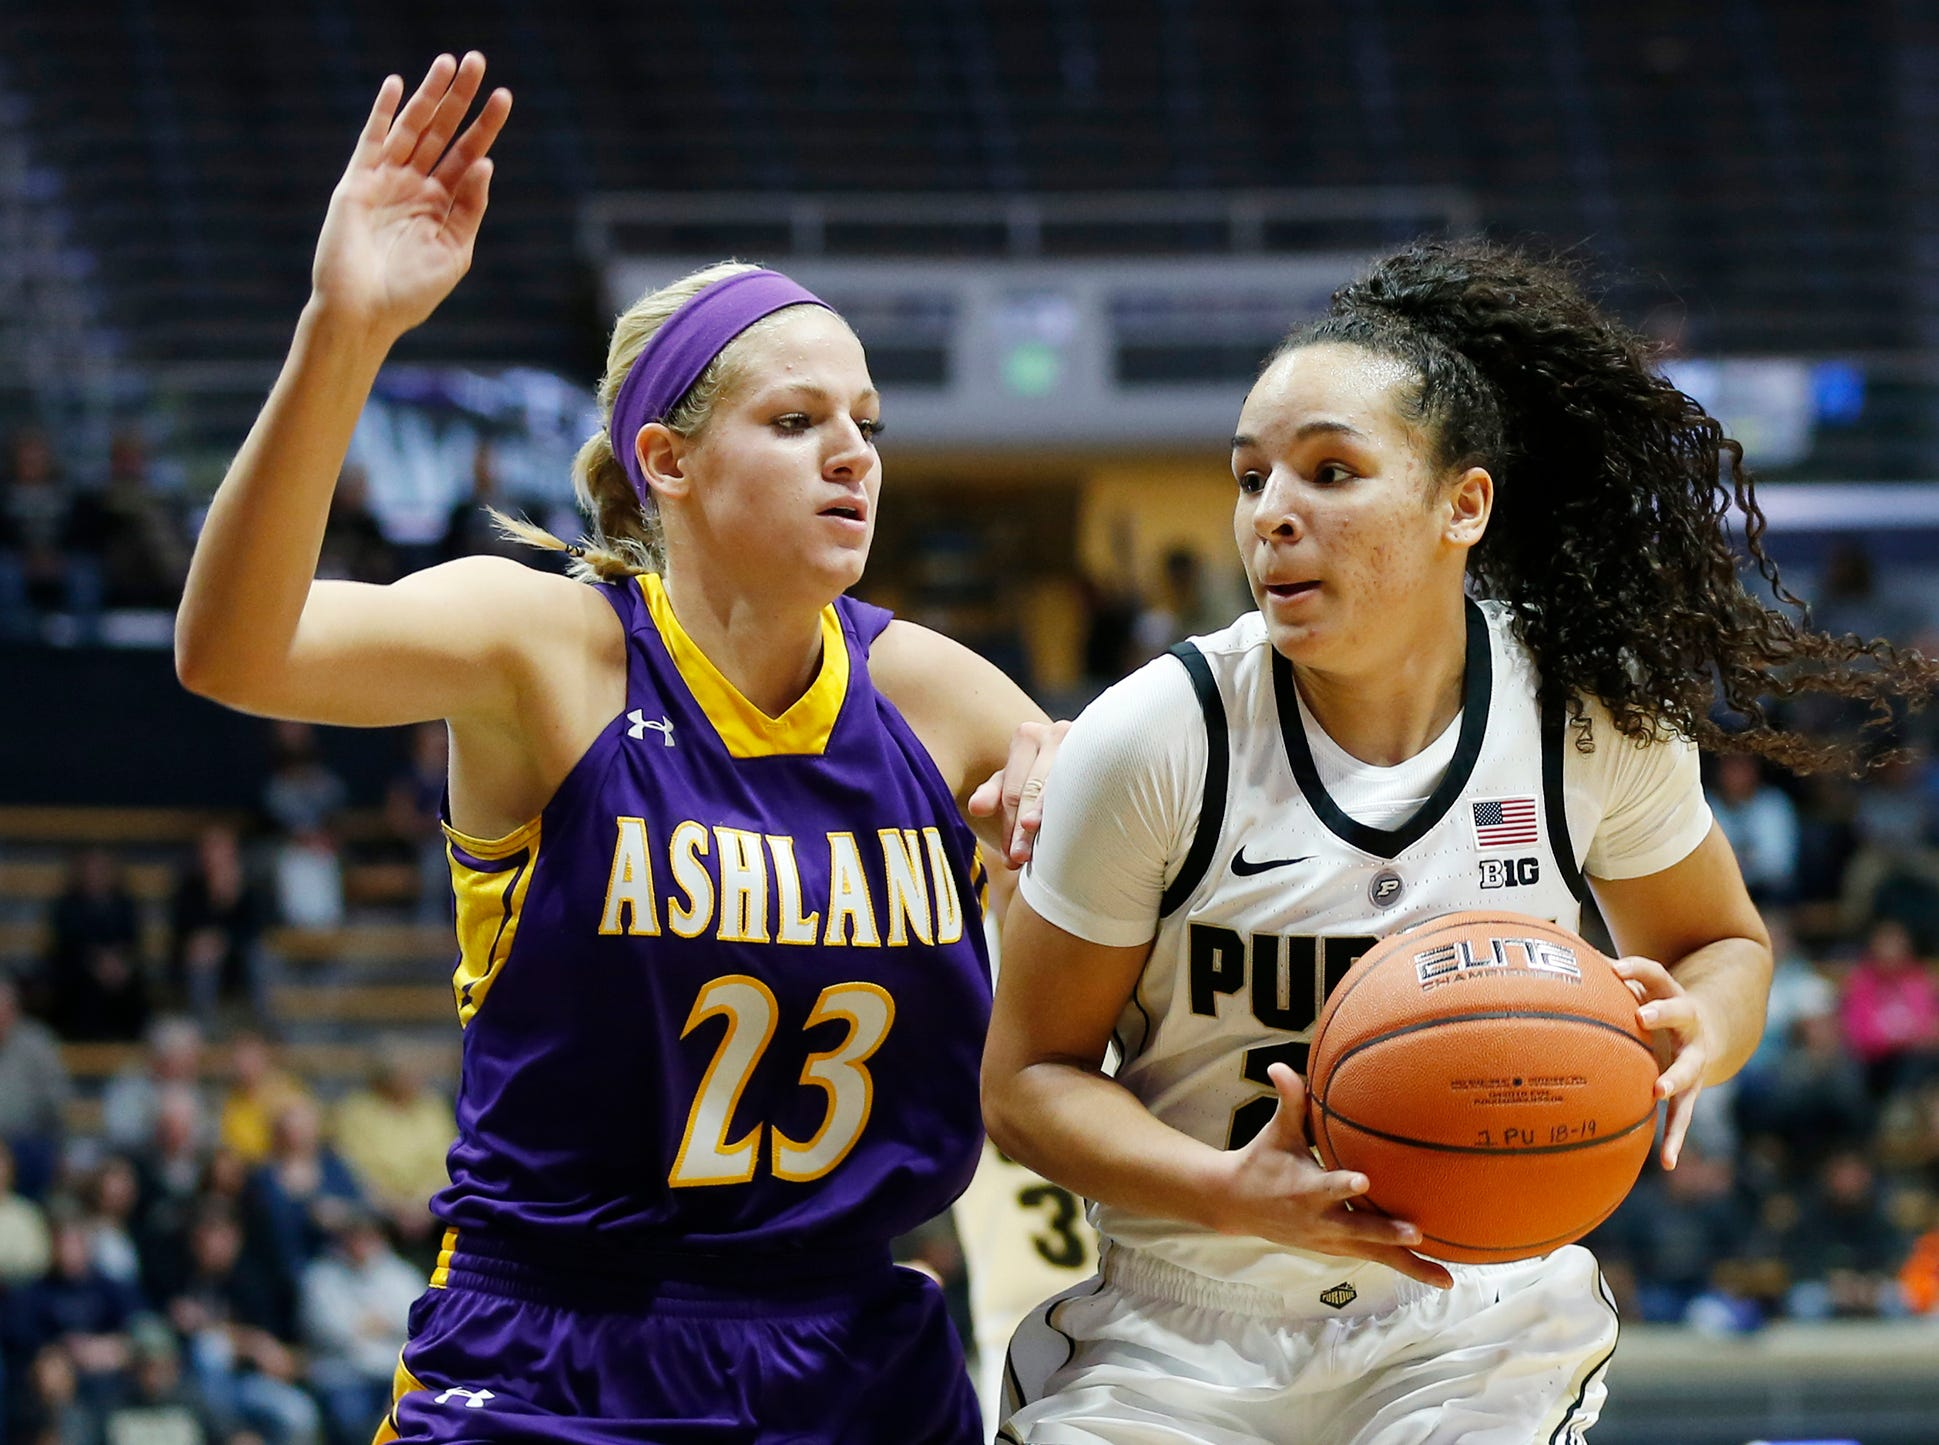 Kayana Traylor of Purdue drives into the lane against Sara Loomis of Ashland Sunday, November 4, 2018, at Mackey Arena. Purdue defeated Ashland 85-69.